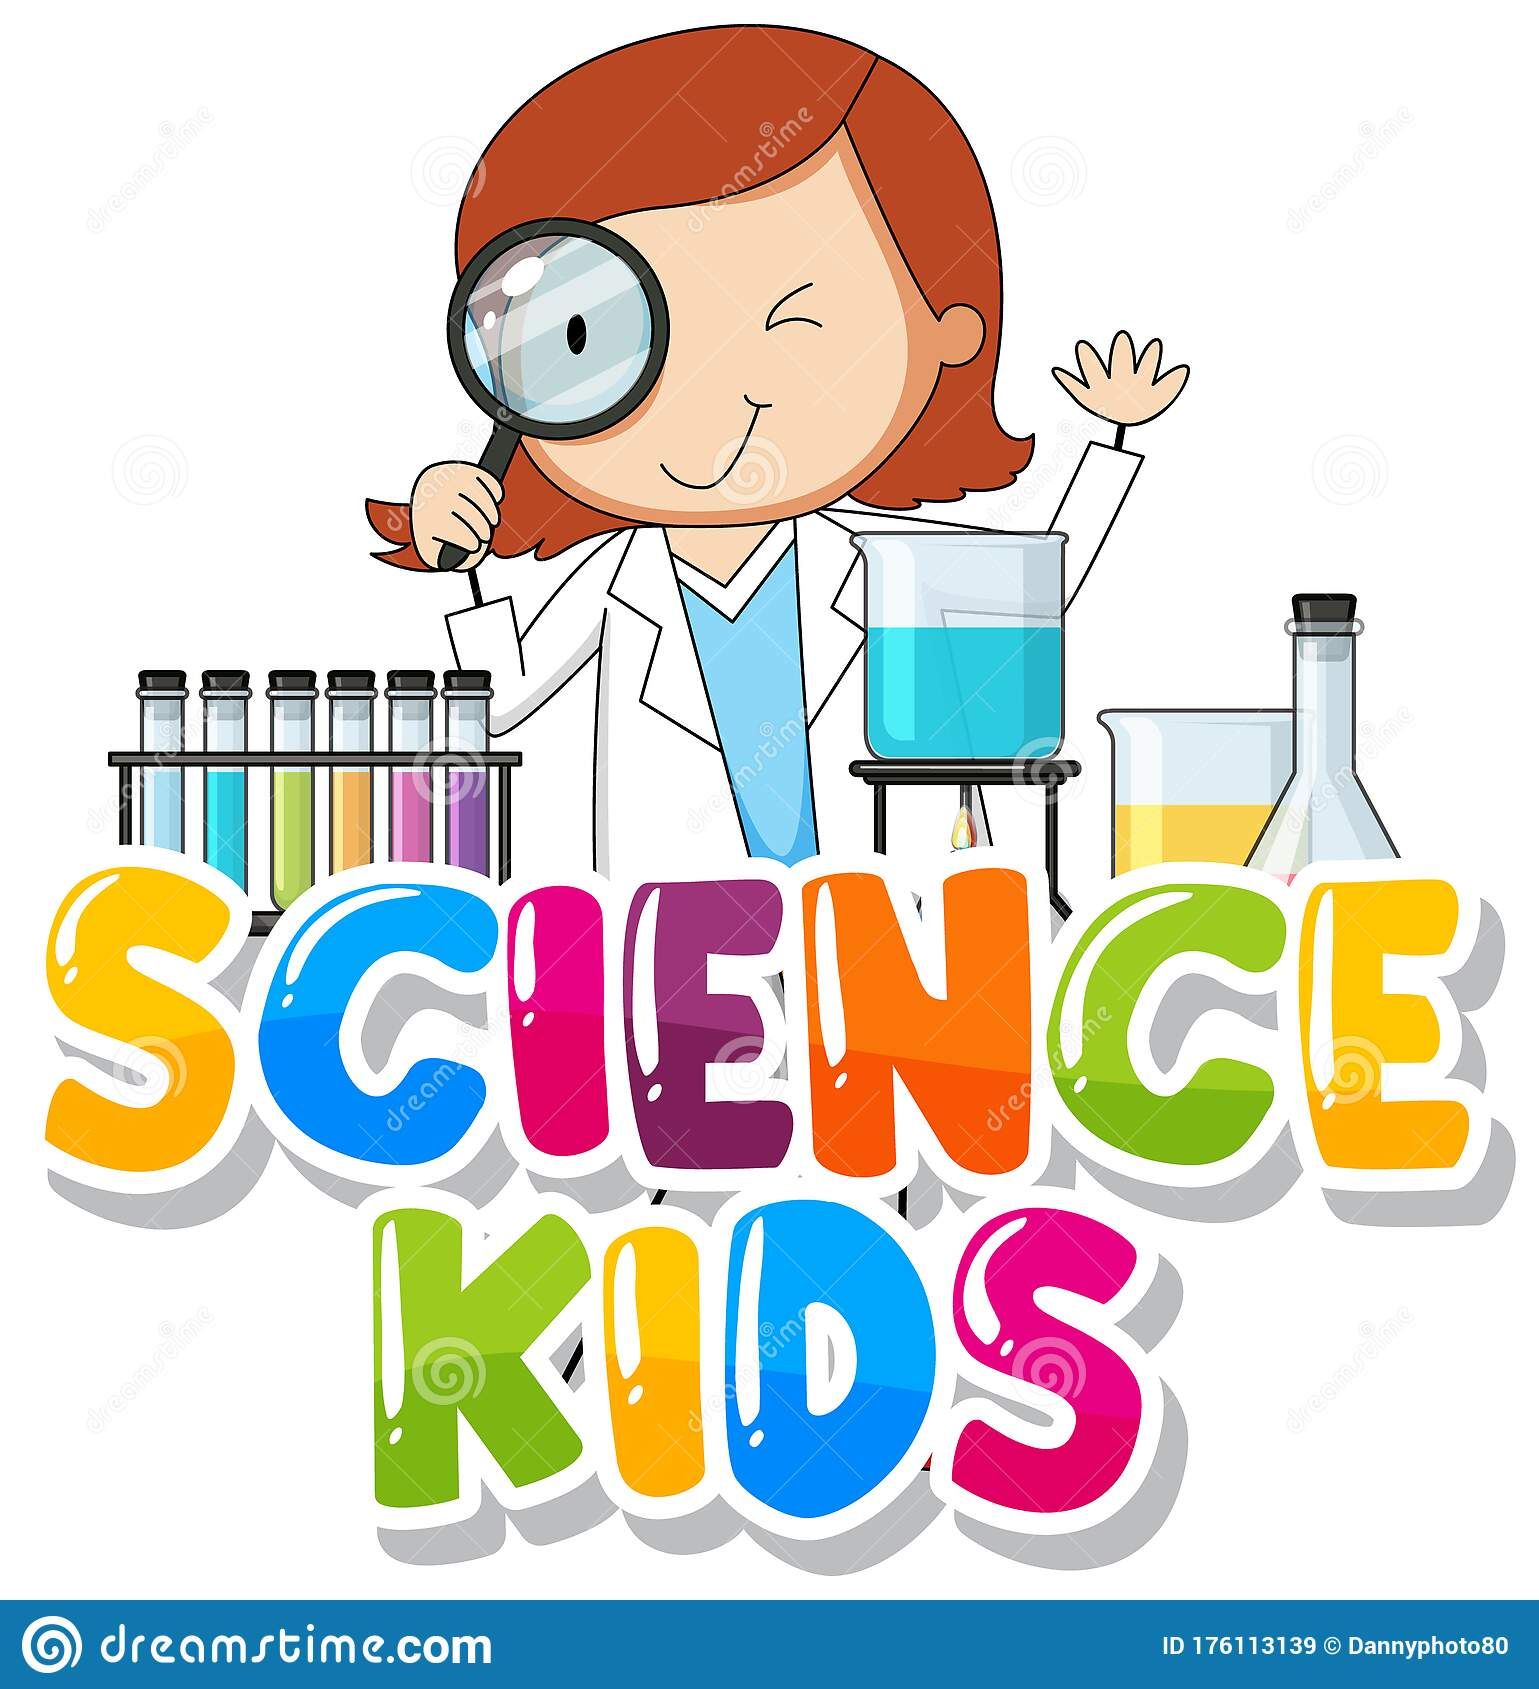 Font Design For Word Science Kids With Kid In The Lab ...